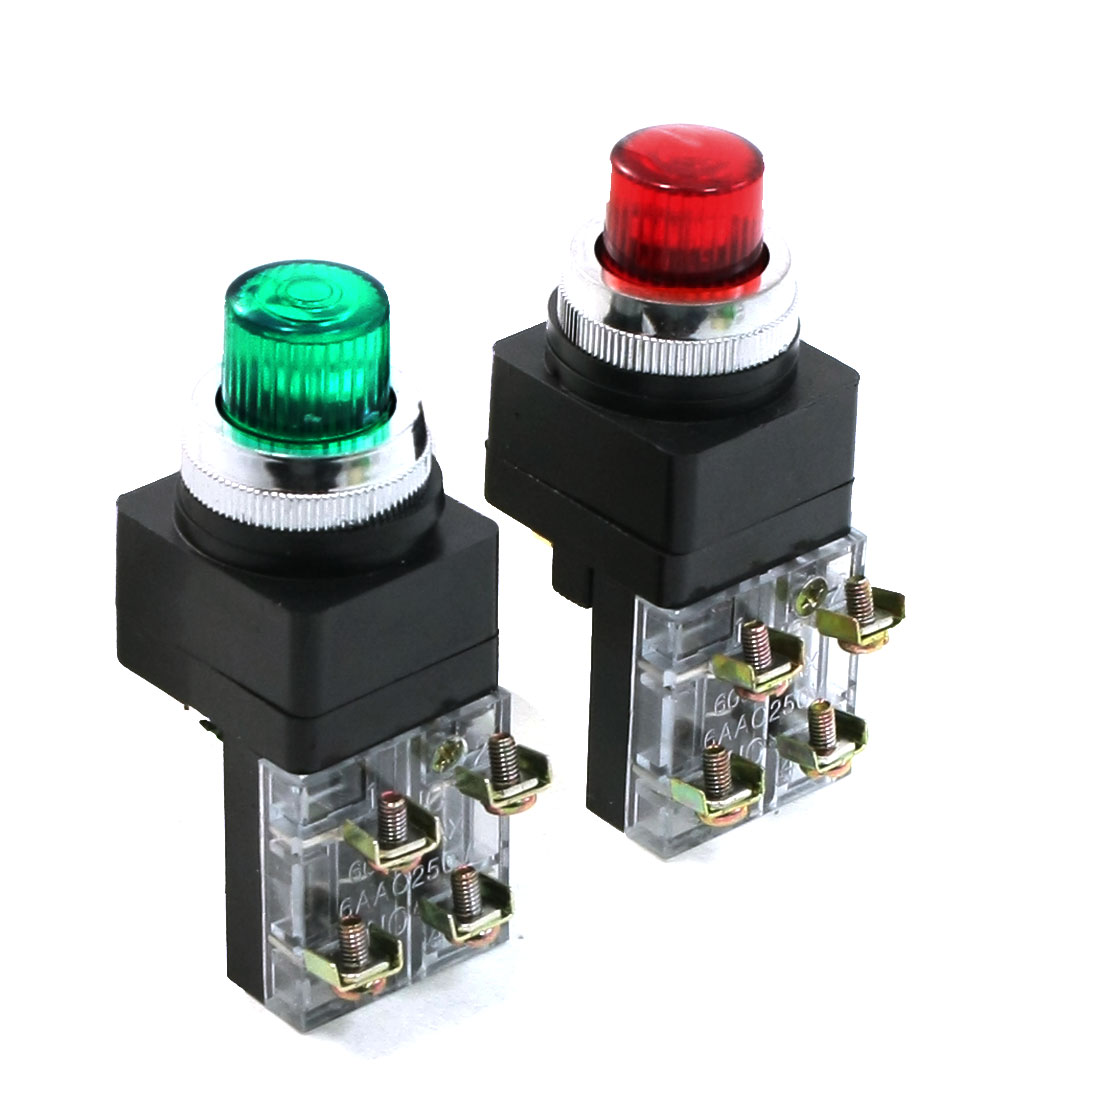 250V Light Lamp Red Green Sign Momentary Push Button Switch 1 NO N/O 1 NC N/C